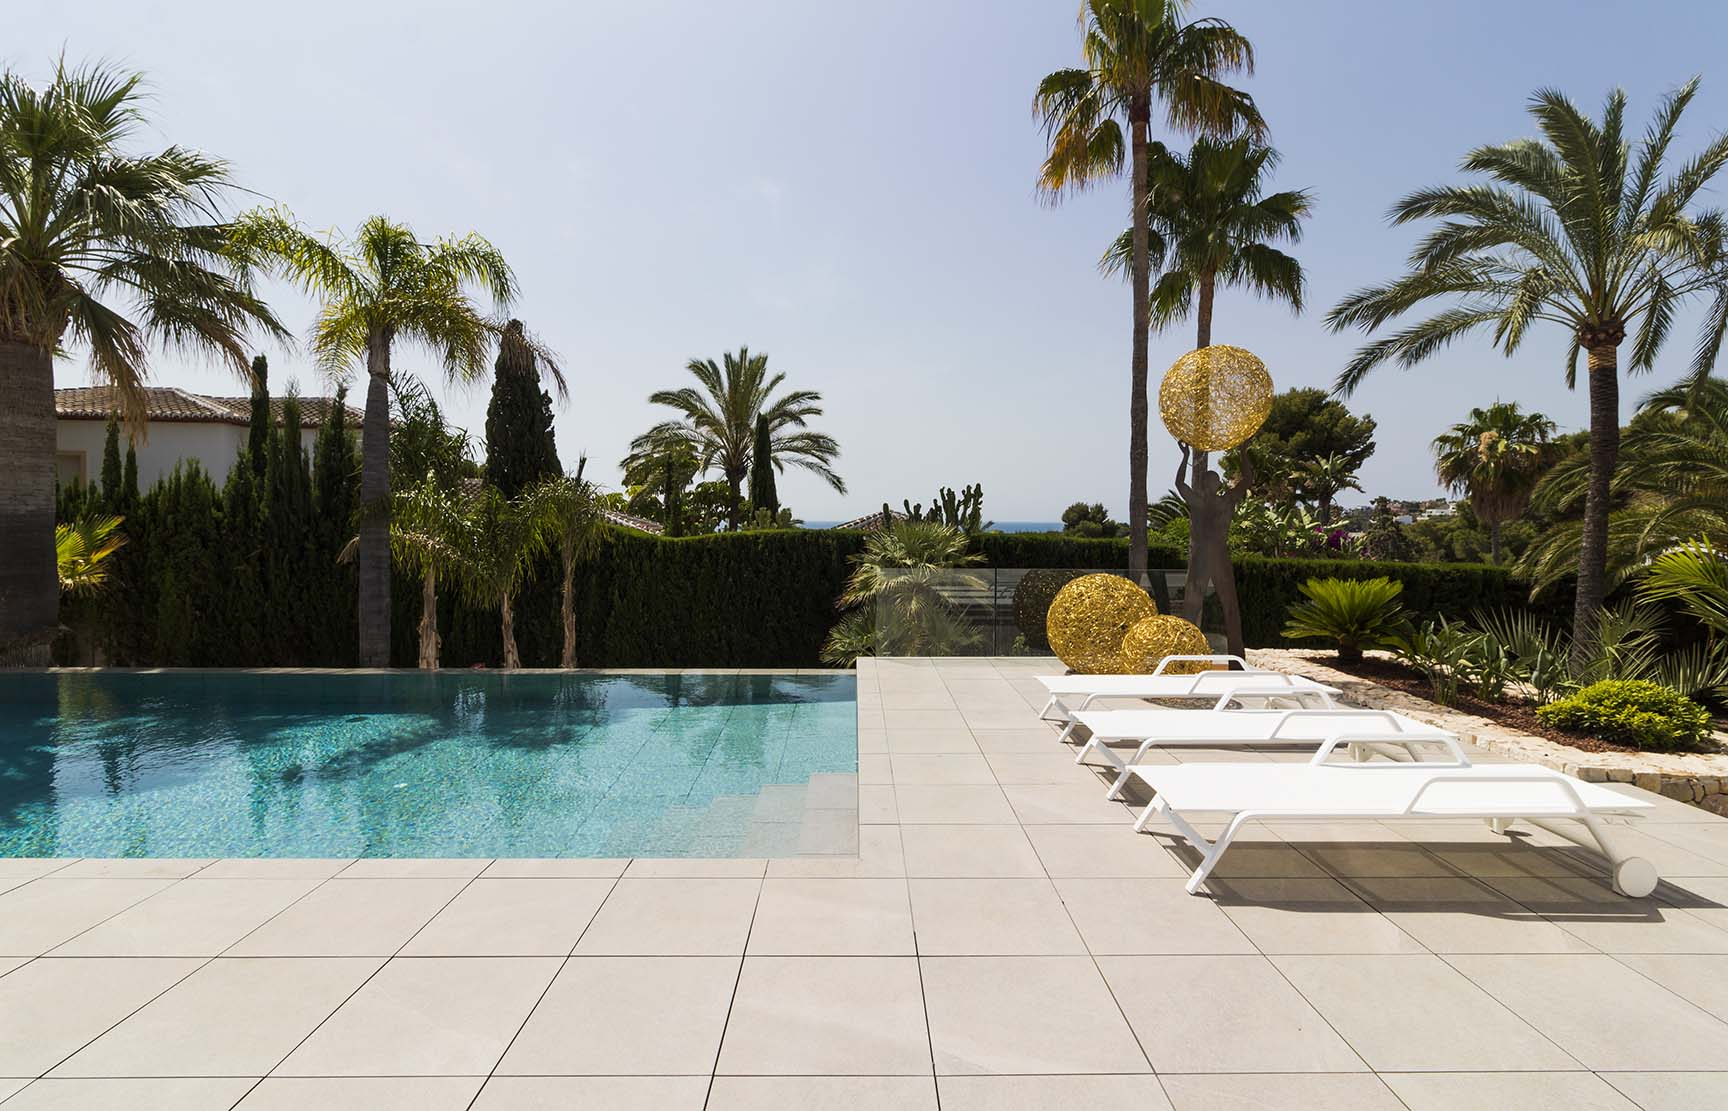 Swimming pool and sea views from the villa at the Costa Blanca. Mediterranean Sea